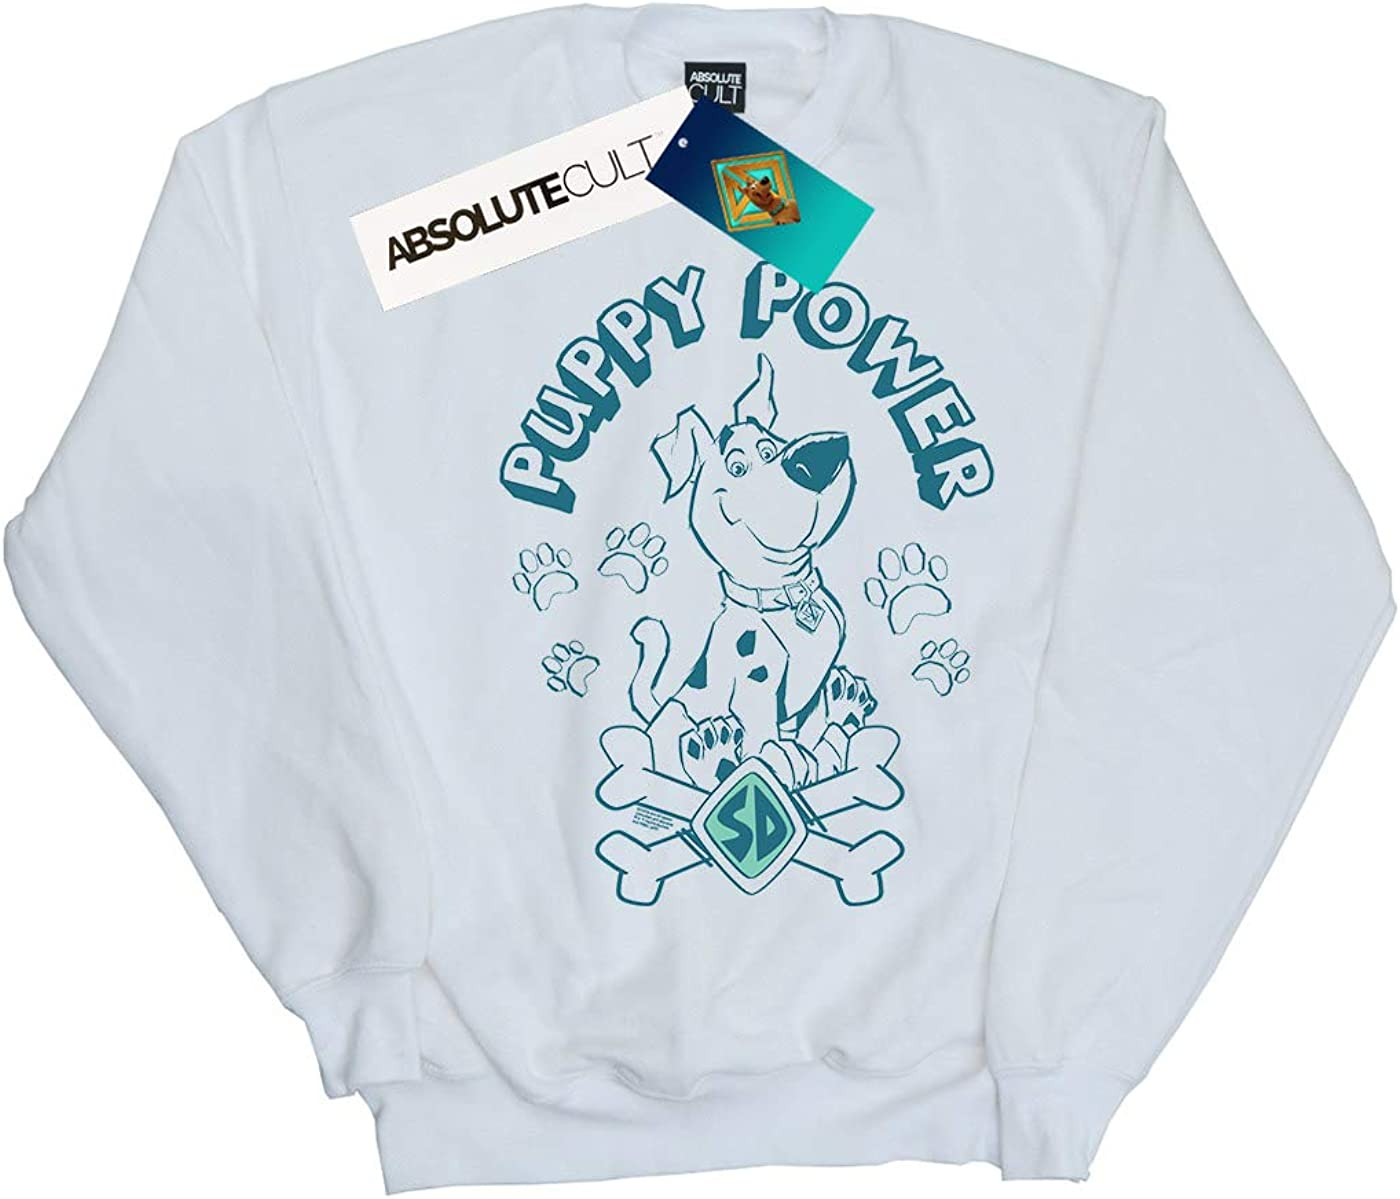 Absolute Cult Scoob! Homme Puppy Power Sweat-Shirt Blanc